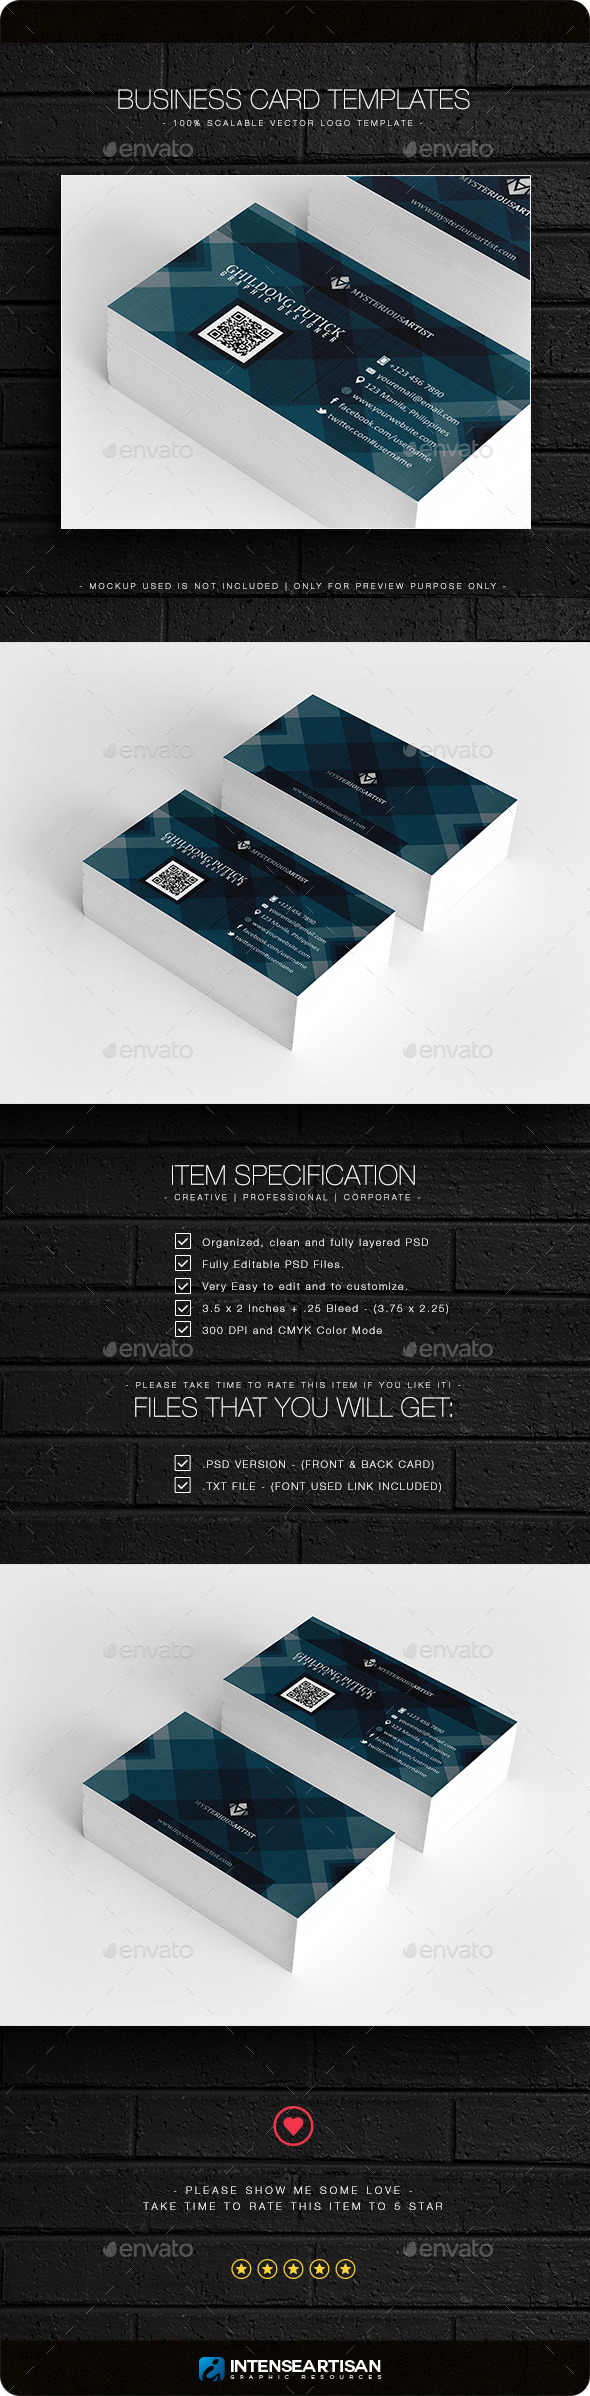 Business Card V.4 - Business Cards Print Templates